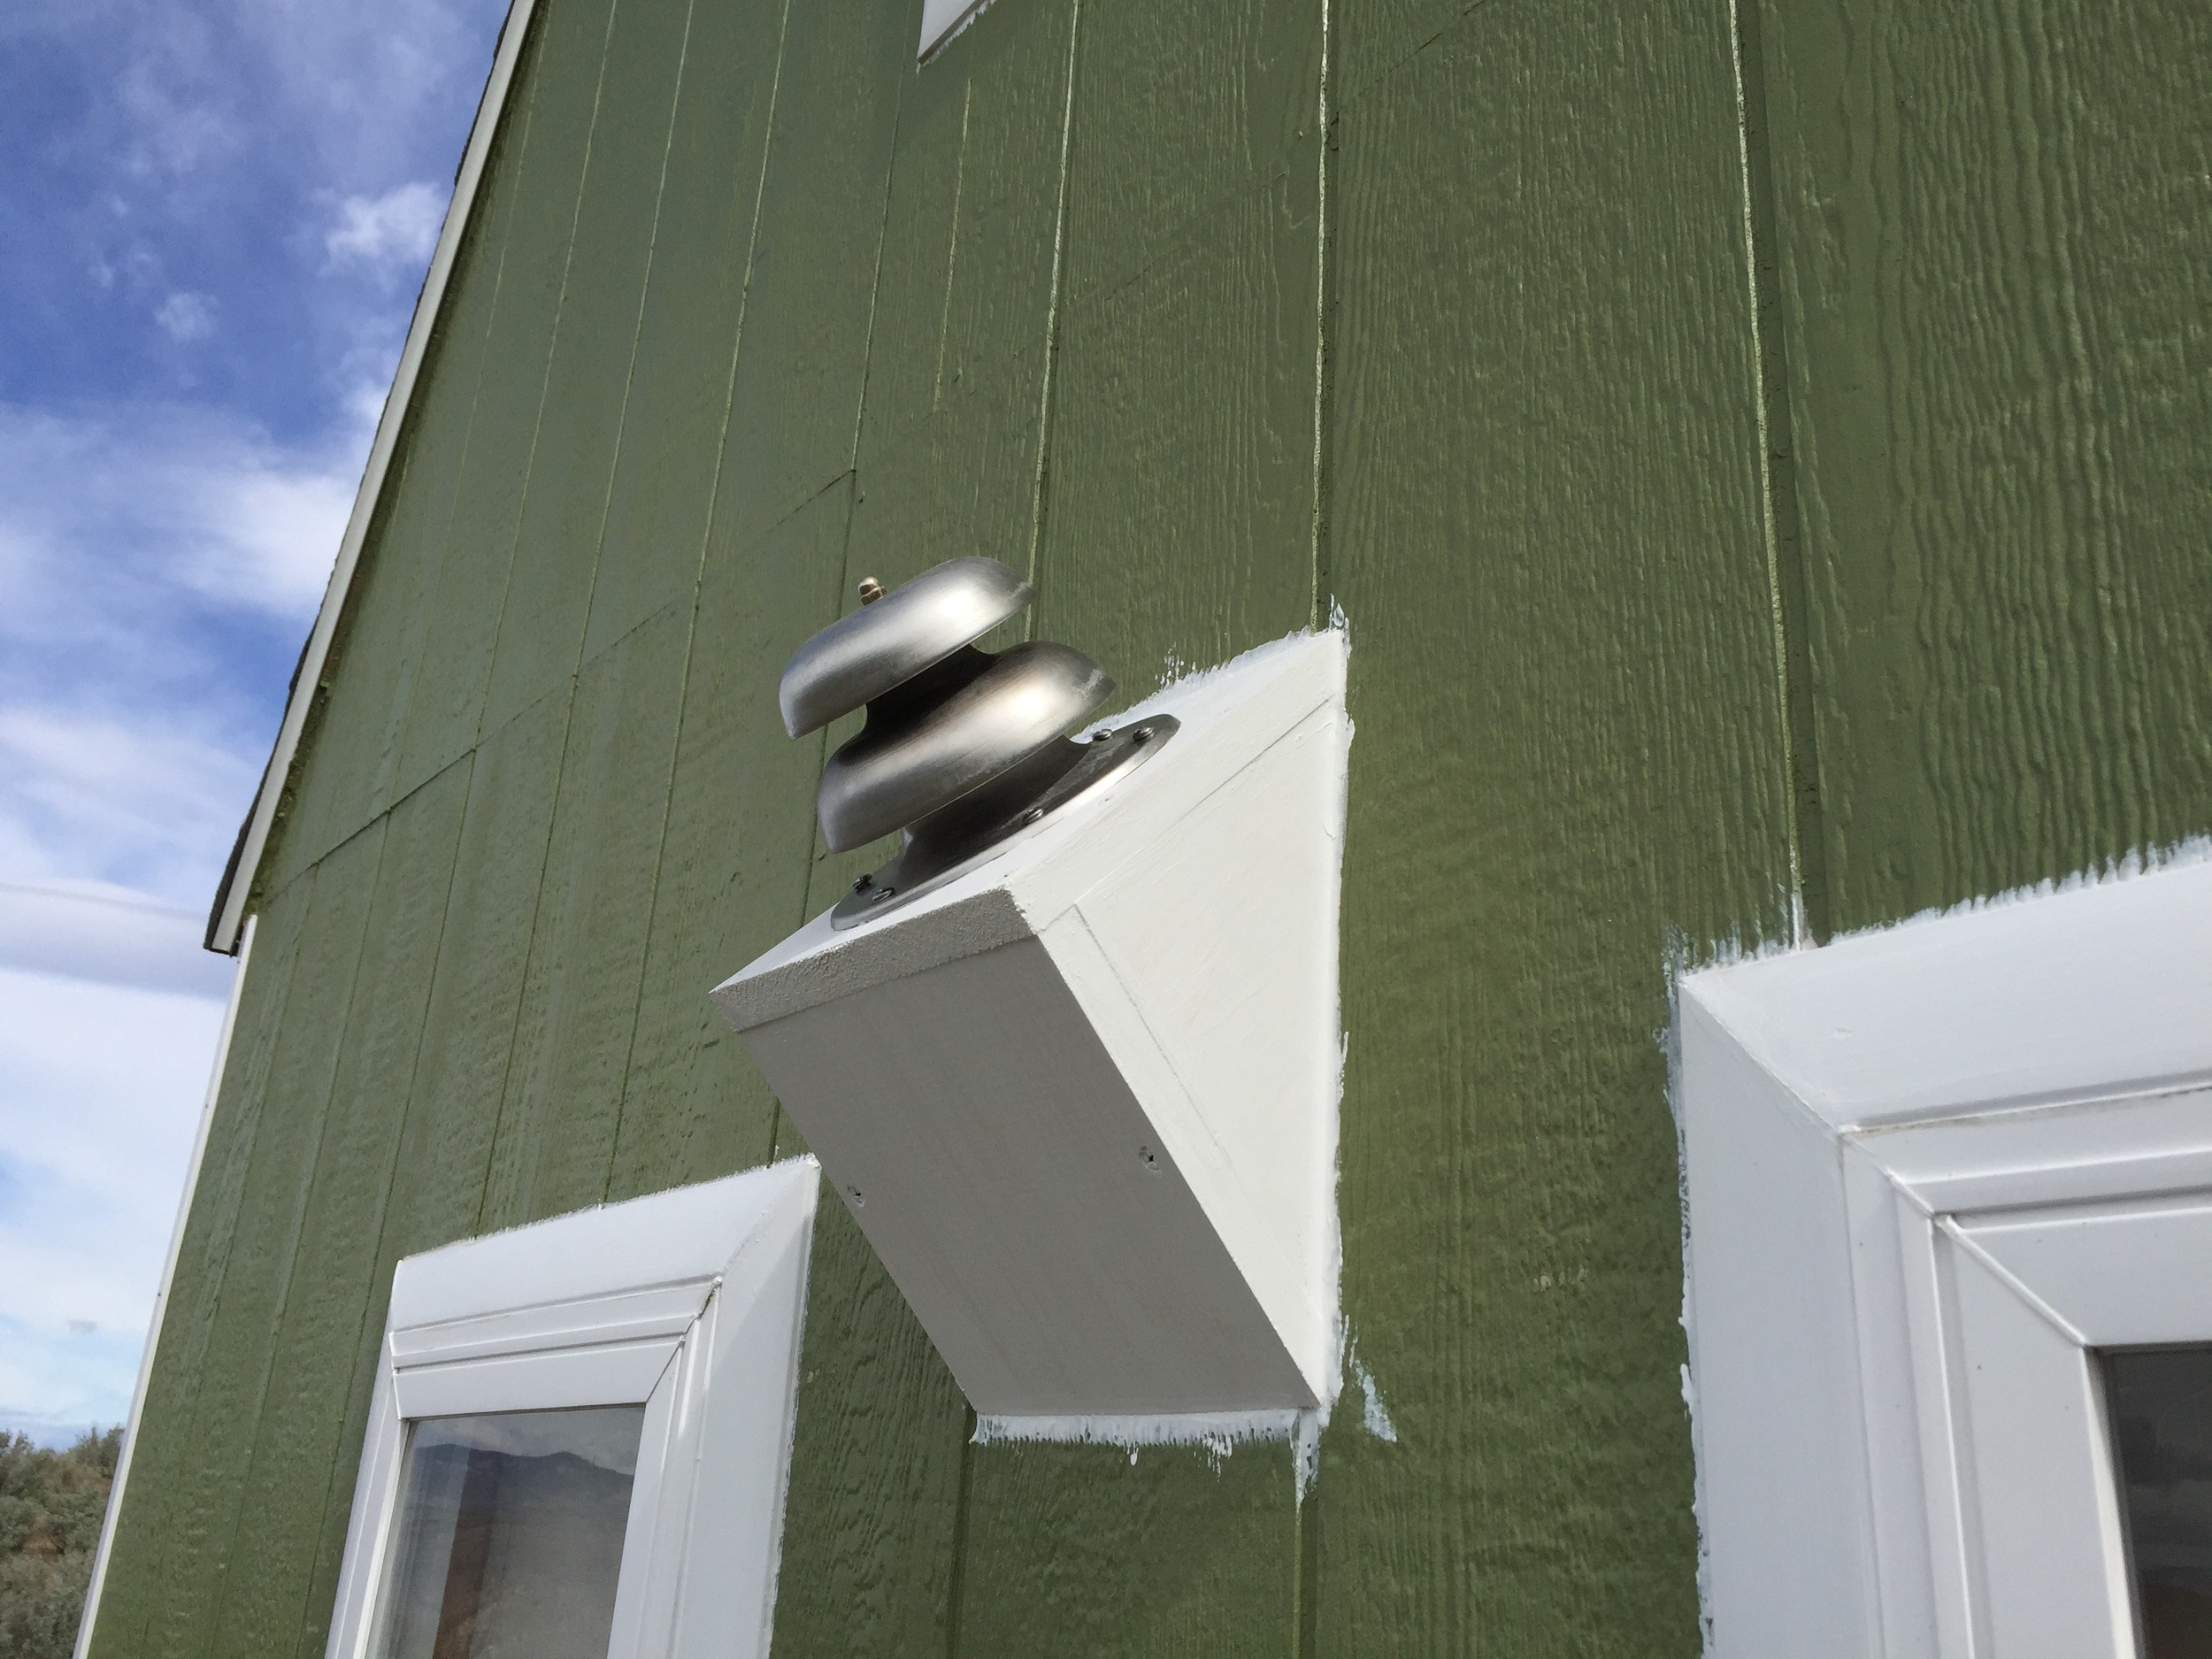 The back side of the cabin now houses the fireplace flue—a dual intake/exhaust pipe with a bell cap.